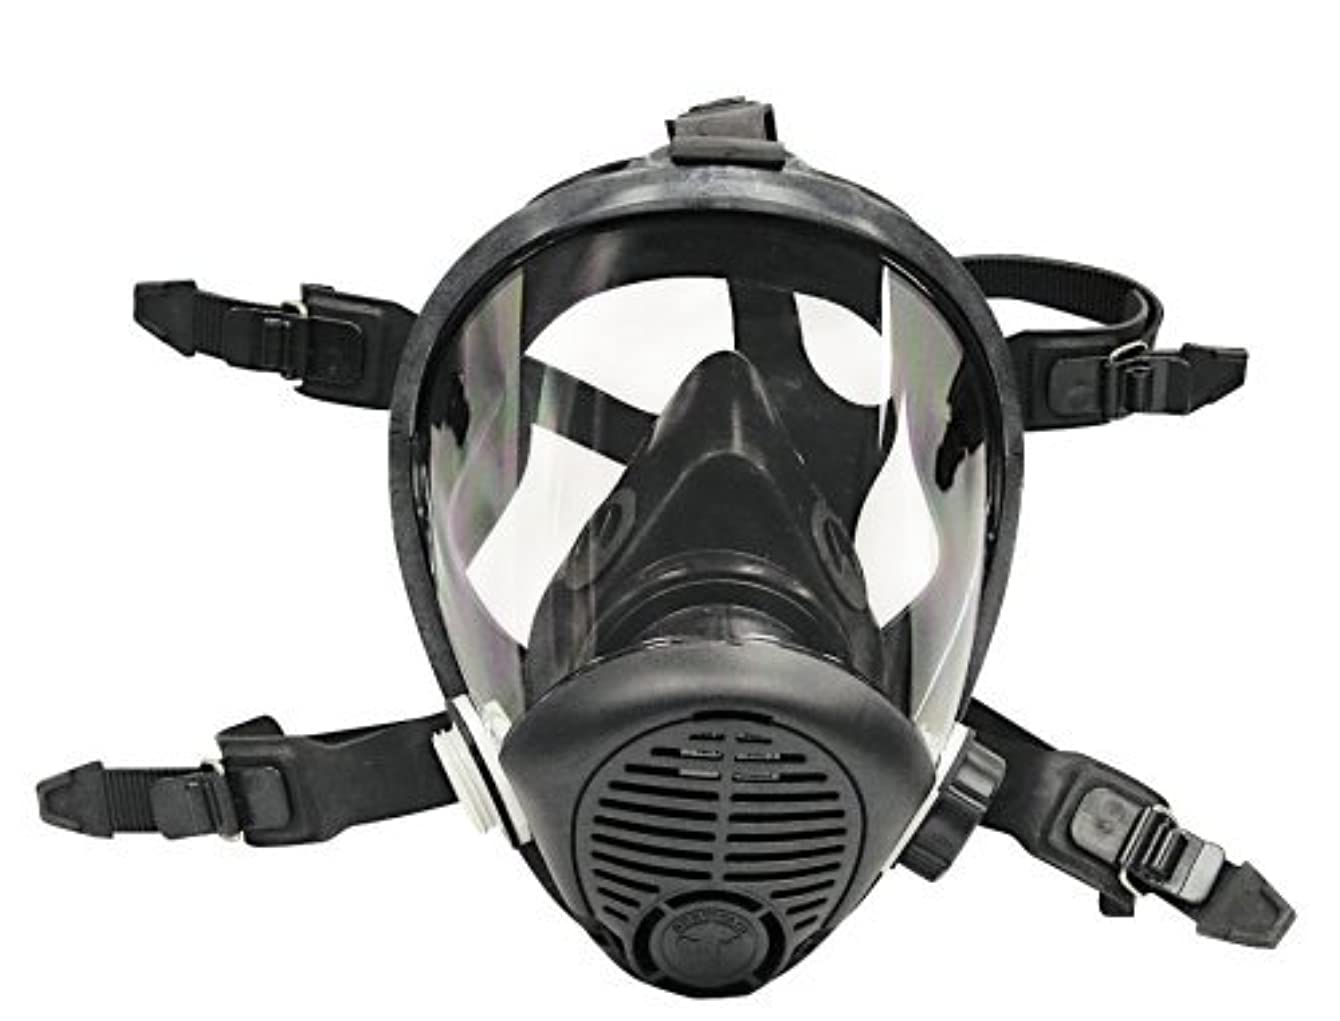 Survival Air Systems 9814-06 Large Opti-fit Multi-Use Full Face Respirator by Survival Air Systems